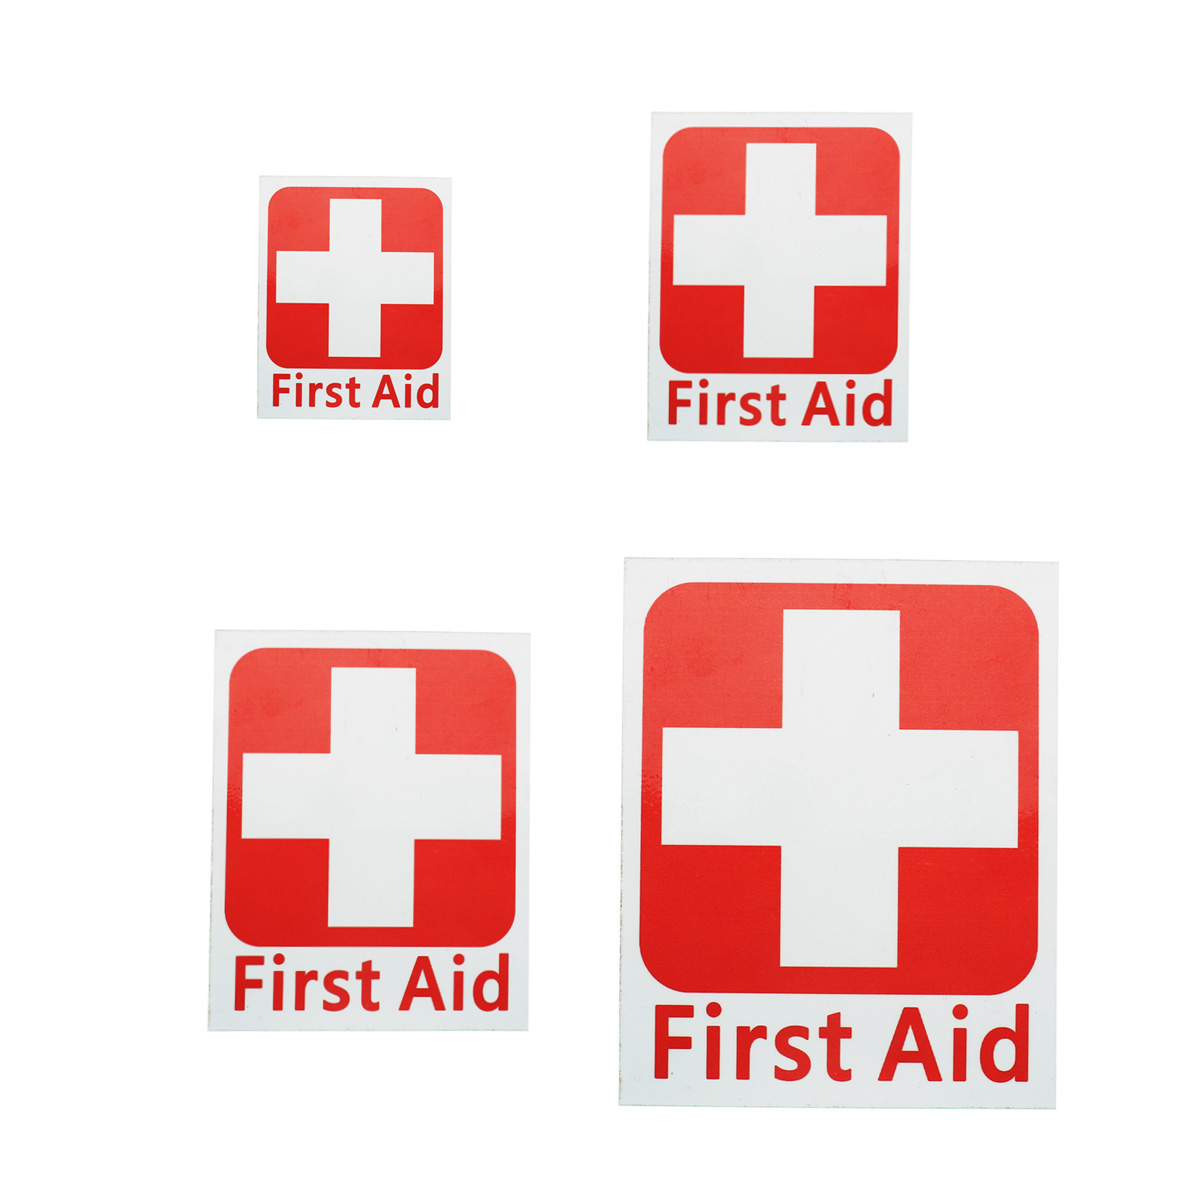 NEW Safurance 4 Size FIRST AID Vinyl Sticker Label Waterproof Signs Red Cross Health Safety Emergency Kits Warning